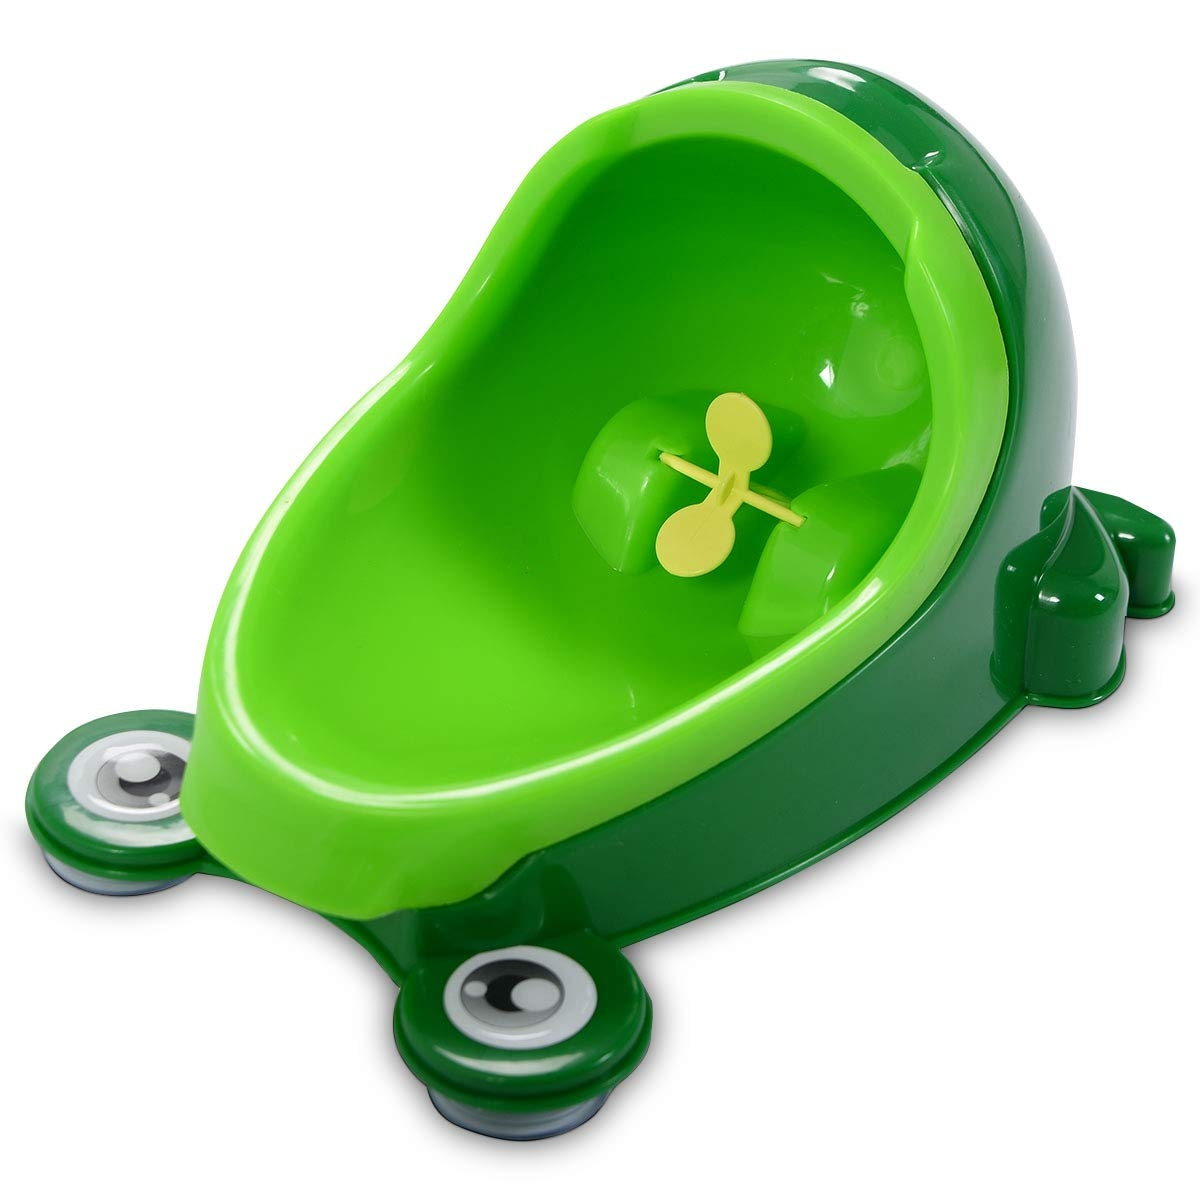 Cute Frog Potty Training Urinal For Boys Kids With Funny Aiming Target 2 color